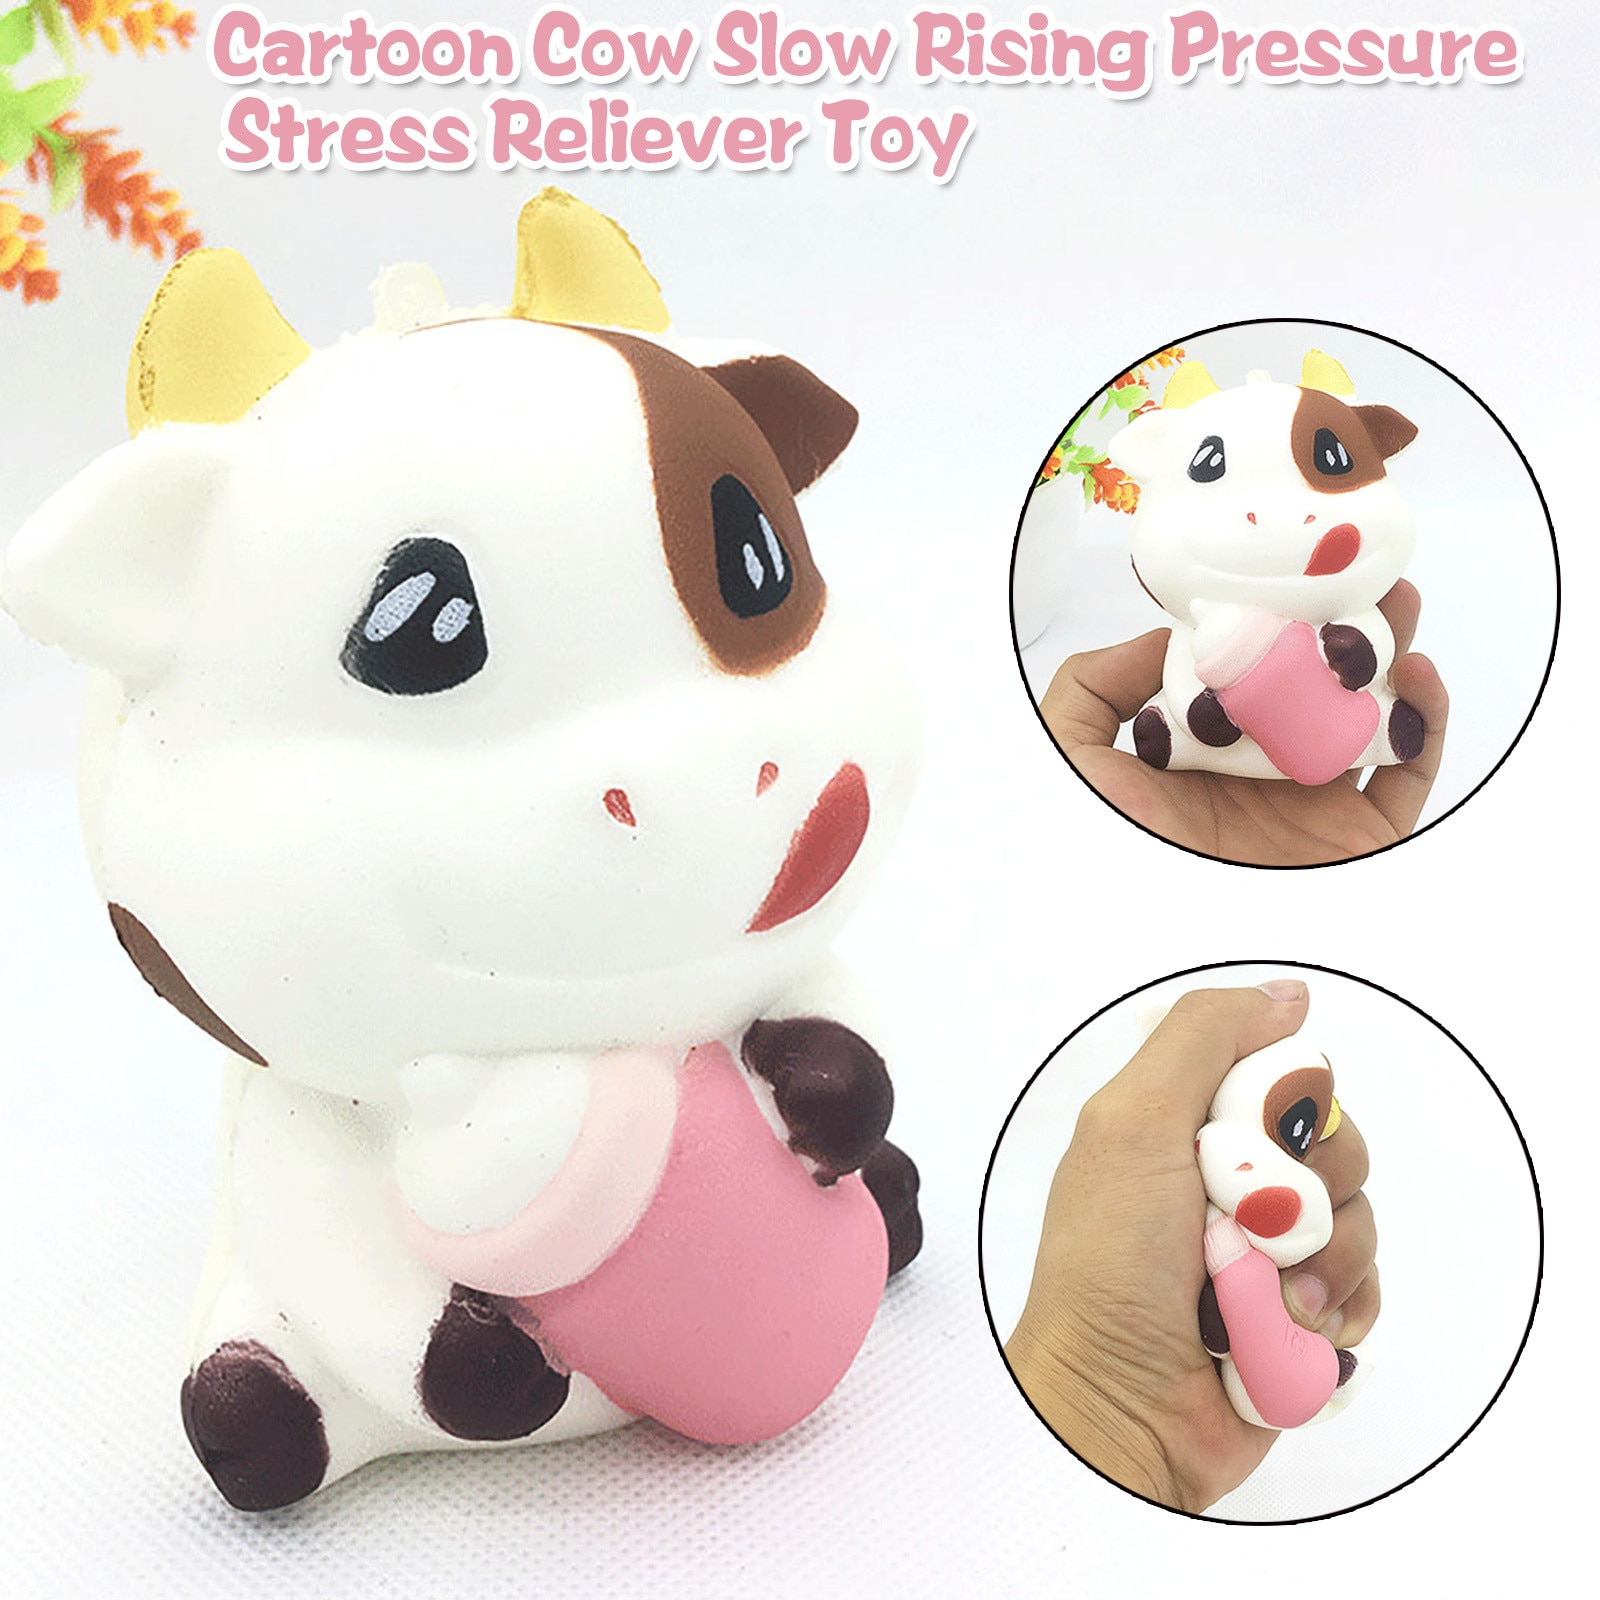 Adorable Cartoon Cow Charm Slow Rising Pressure Stress Reliever Hobbies Toys Decompression Personalized Birthday Present Jouet